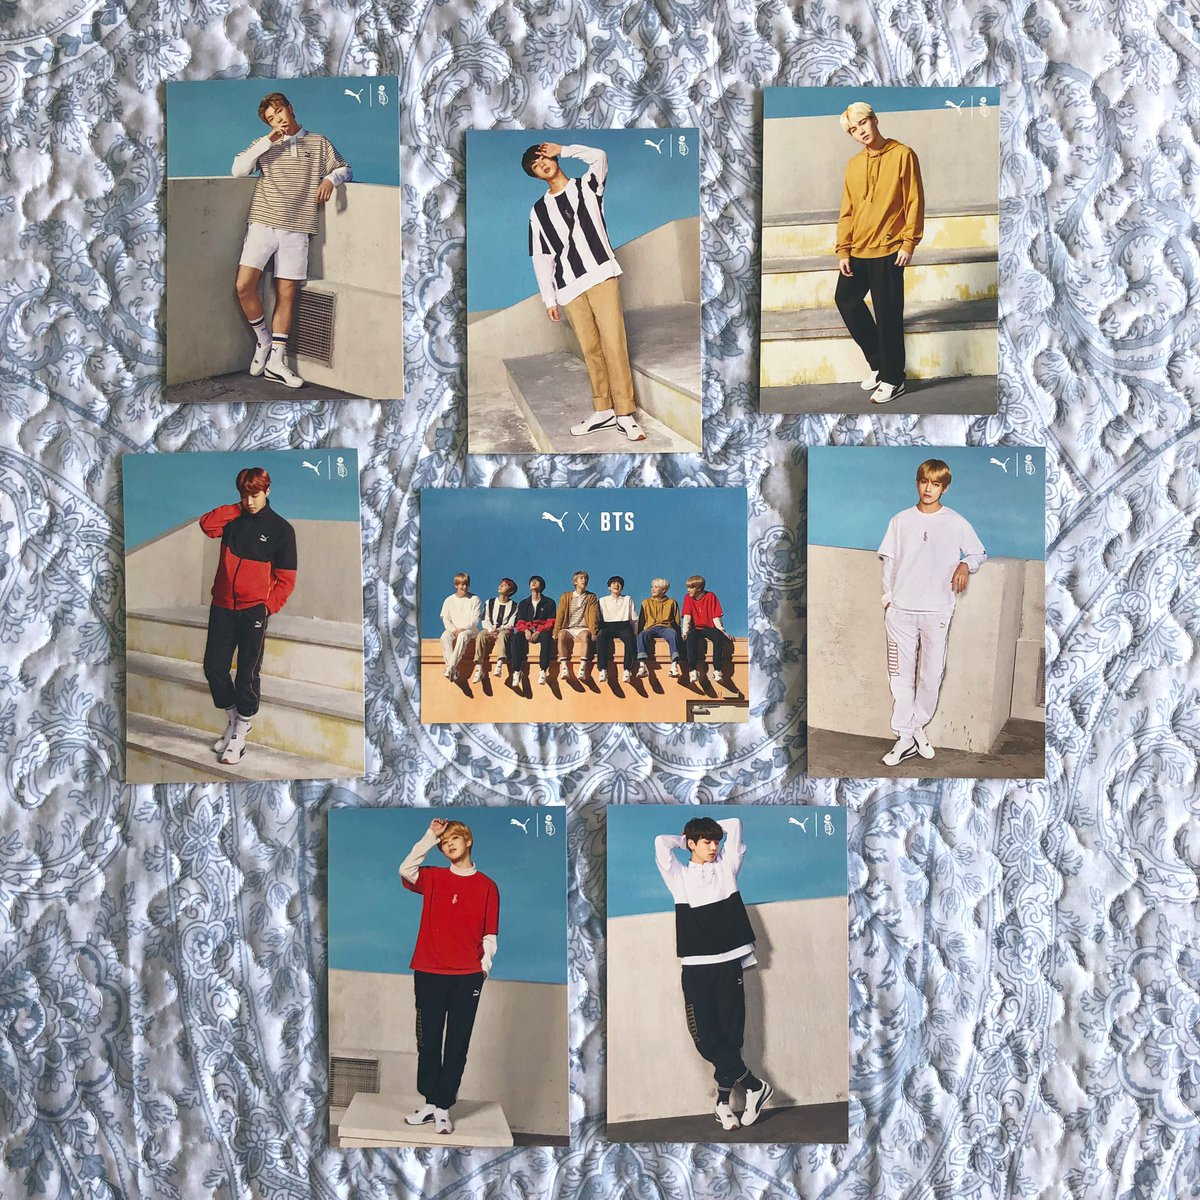 after @minpdsbae gifted me the jimin puma turin photocard i had an itch that needed scratching, so i scratched it and with all 8 cards🥰